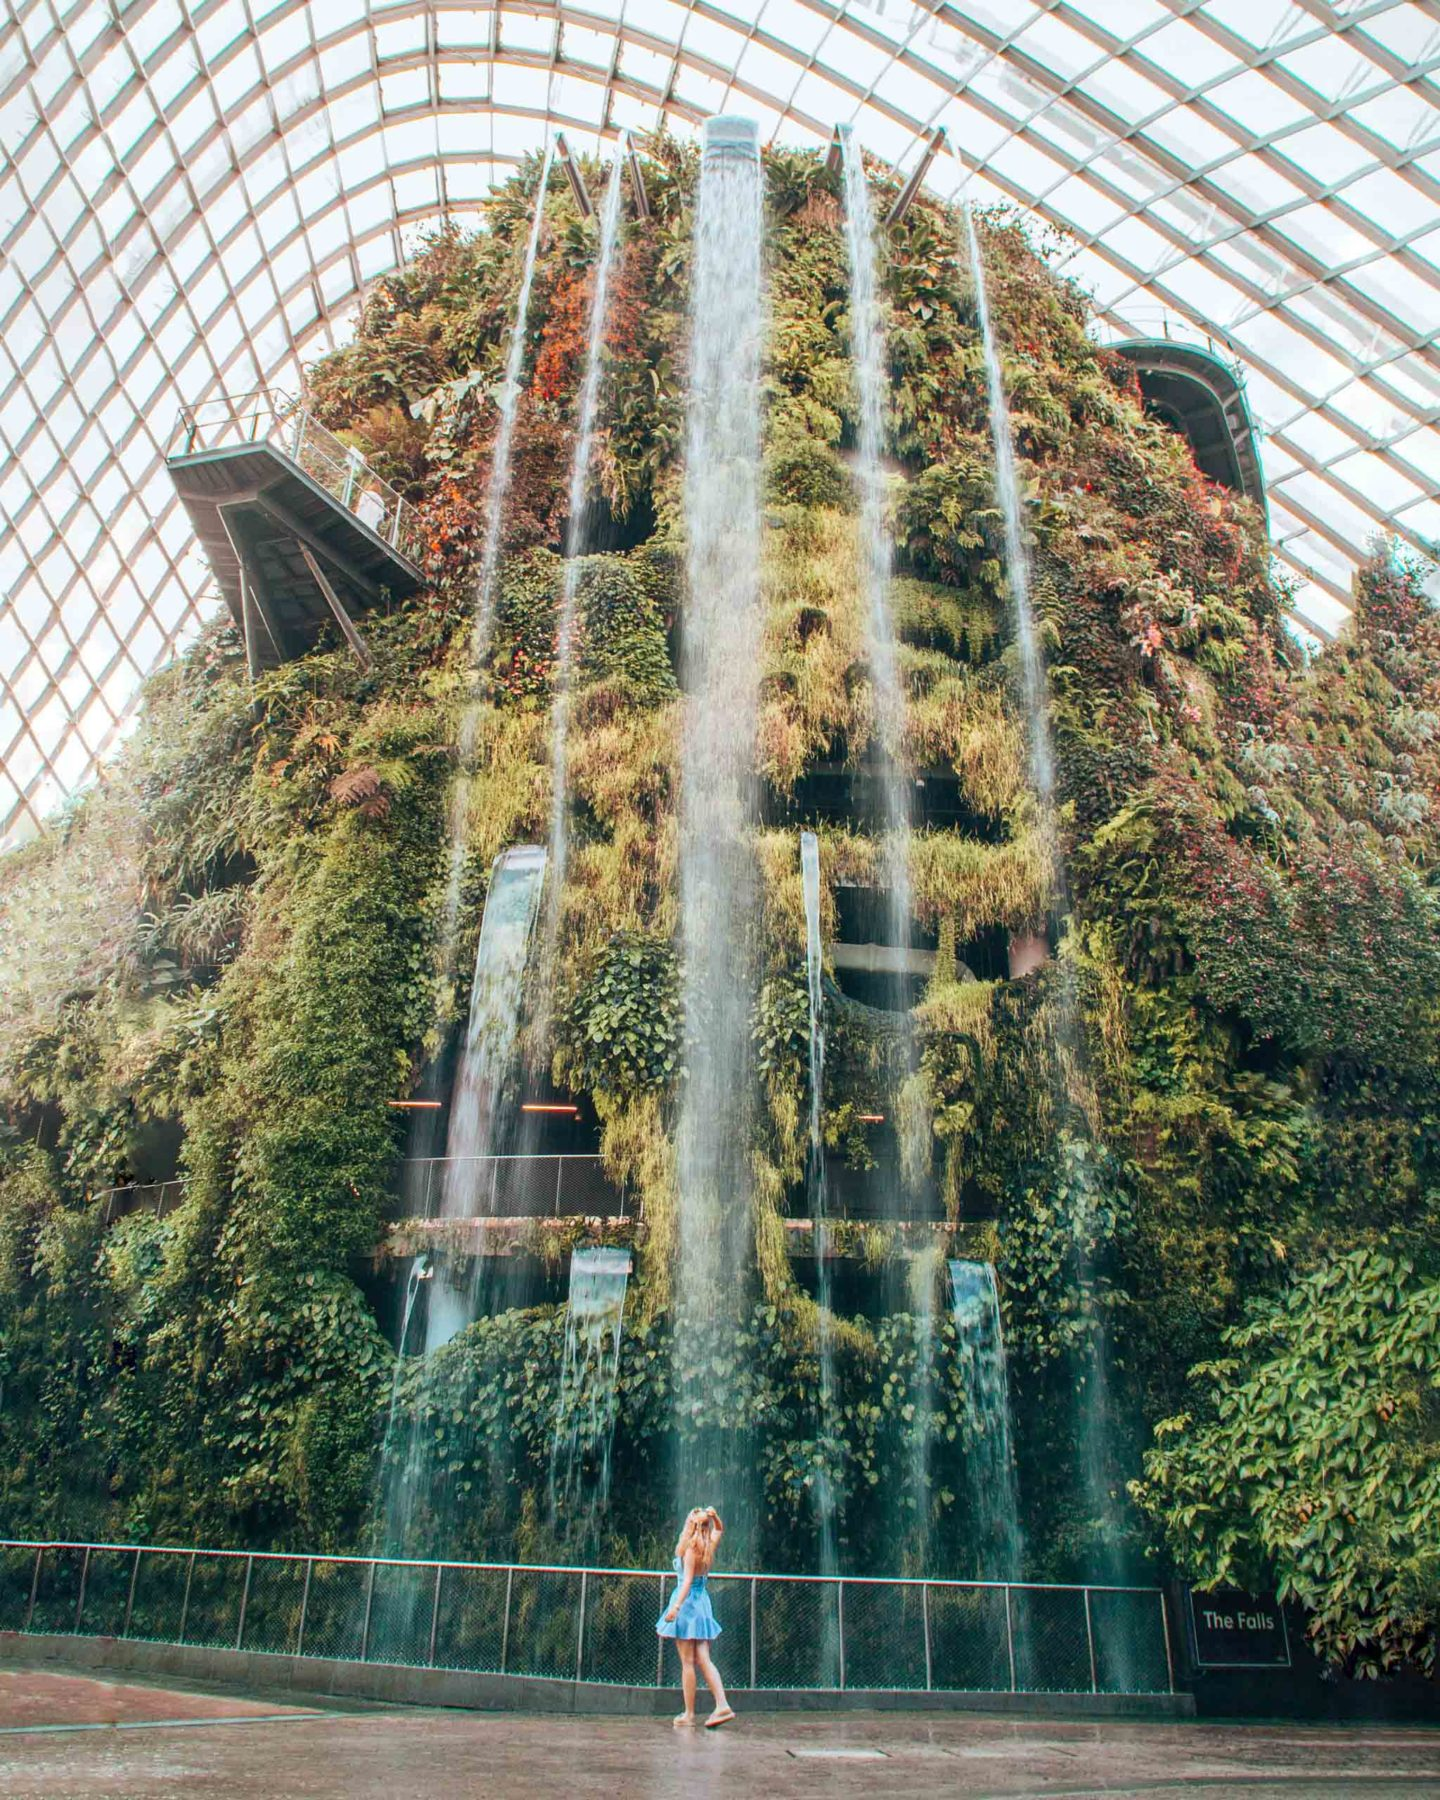 Cloud forest waterfall in the Gardens by the Bay, Singapore